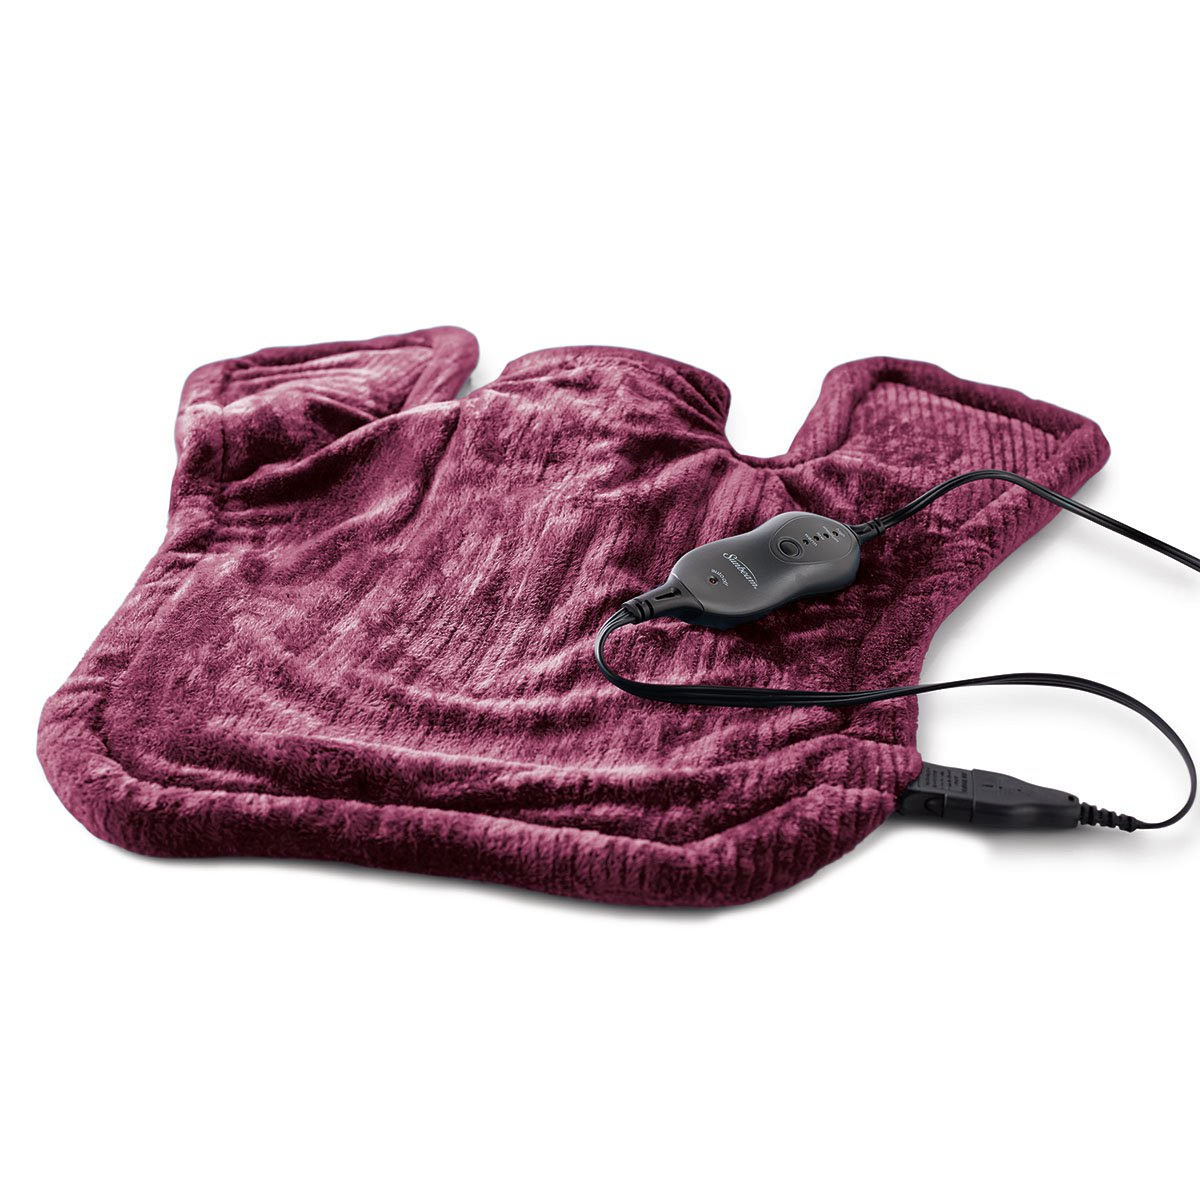 Sunbeam XL Renue Heat Therapy Wrap, Burgundy